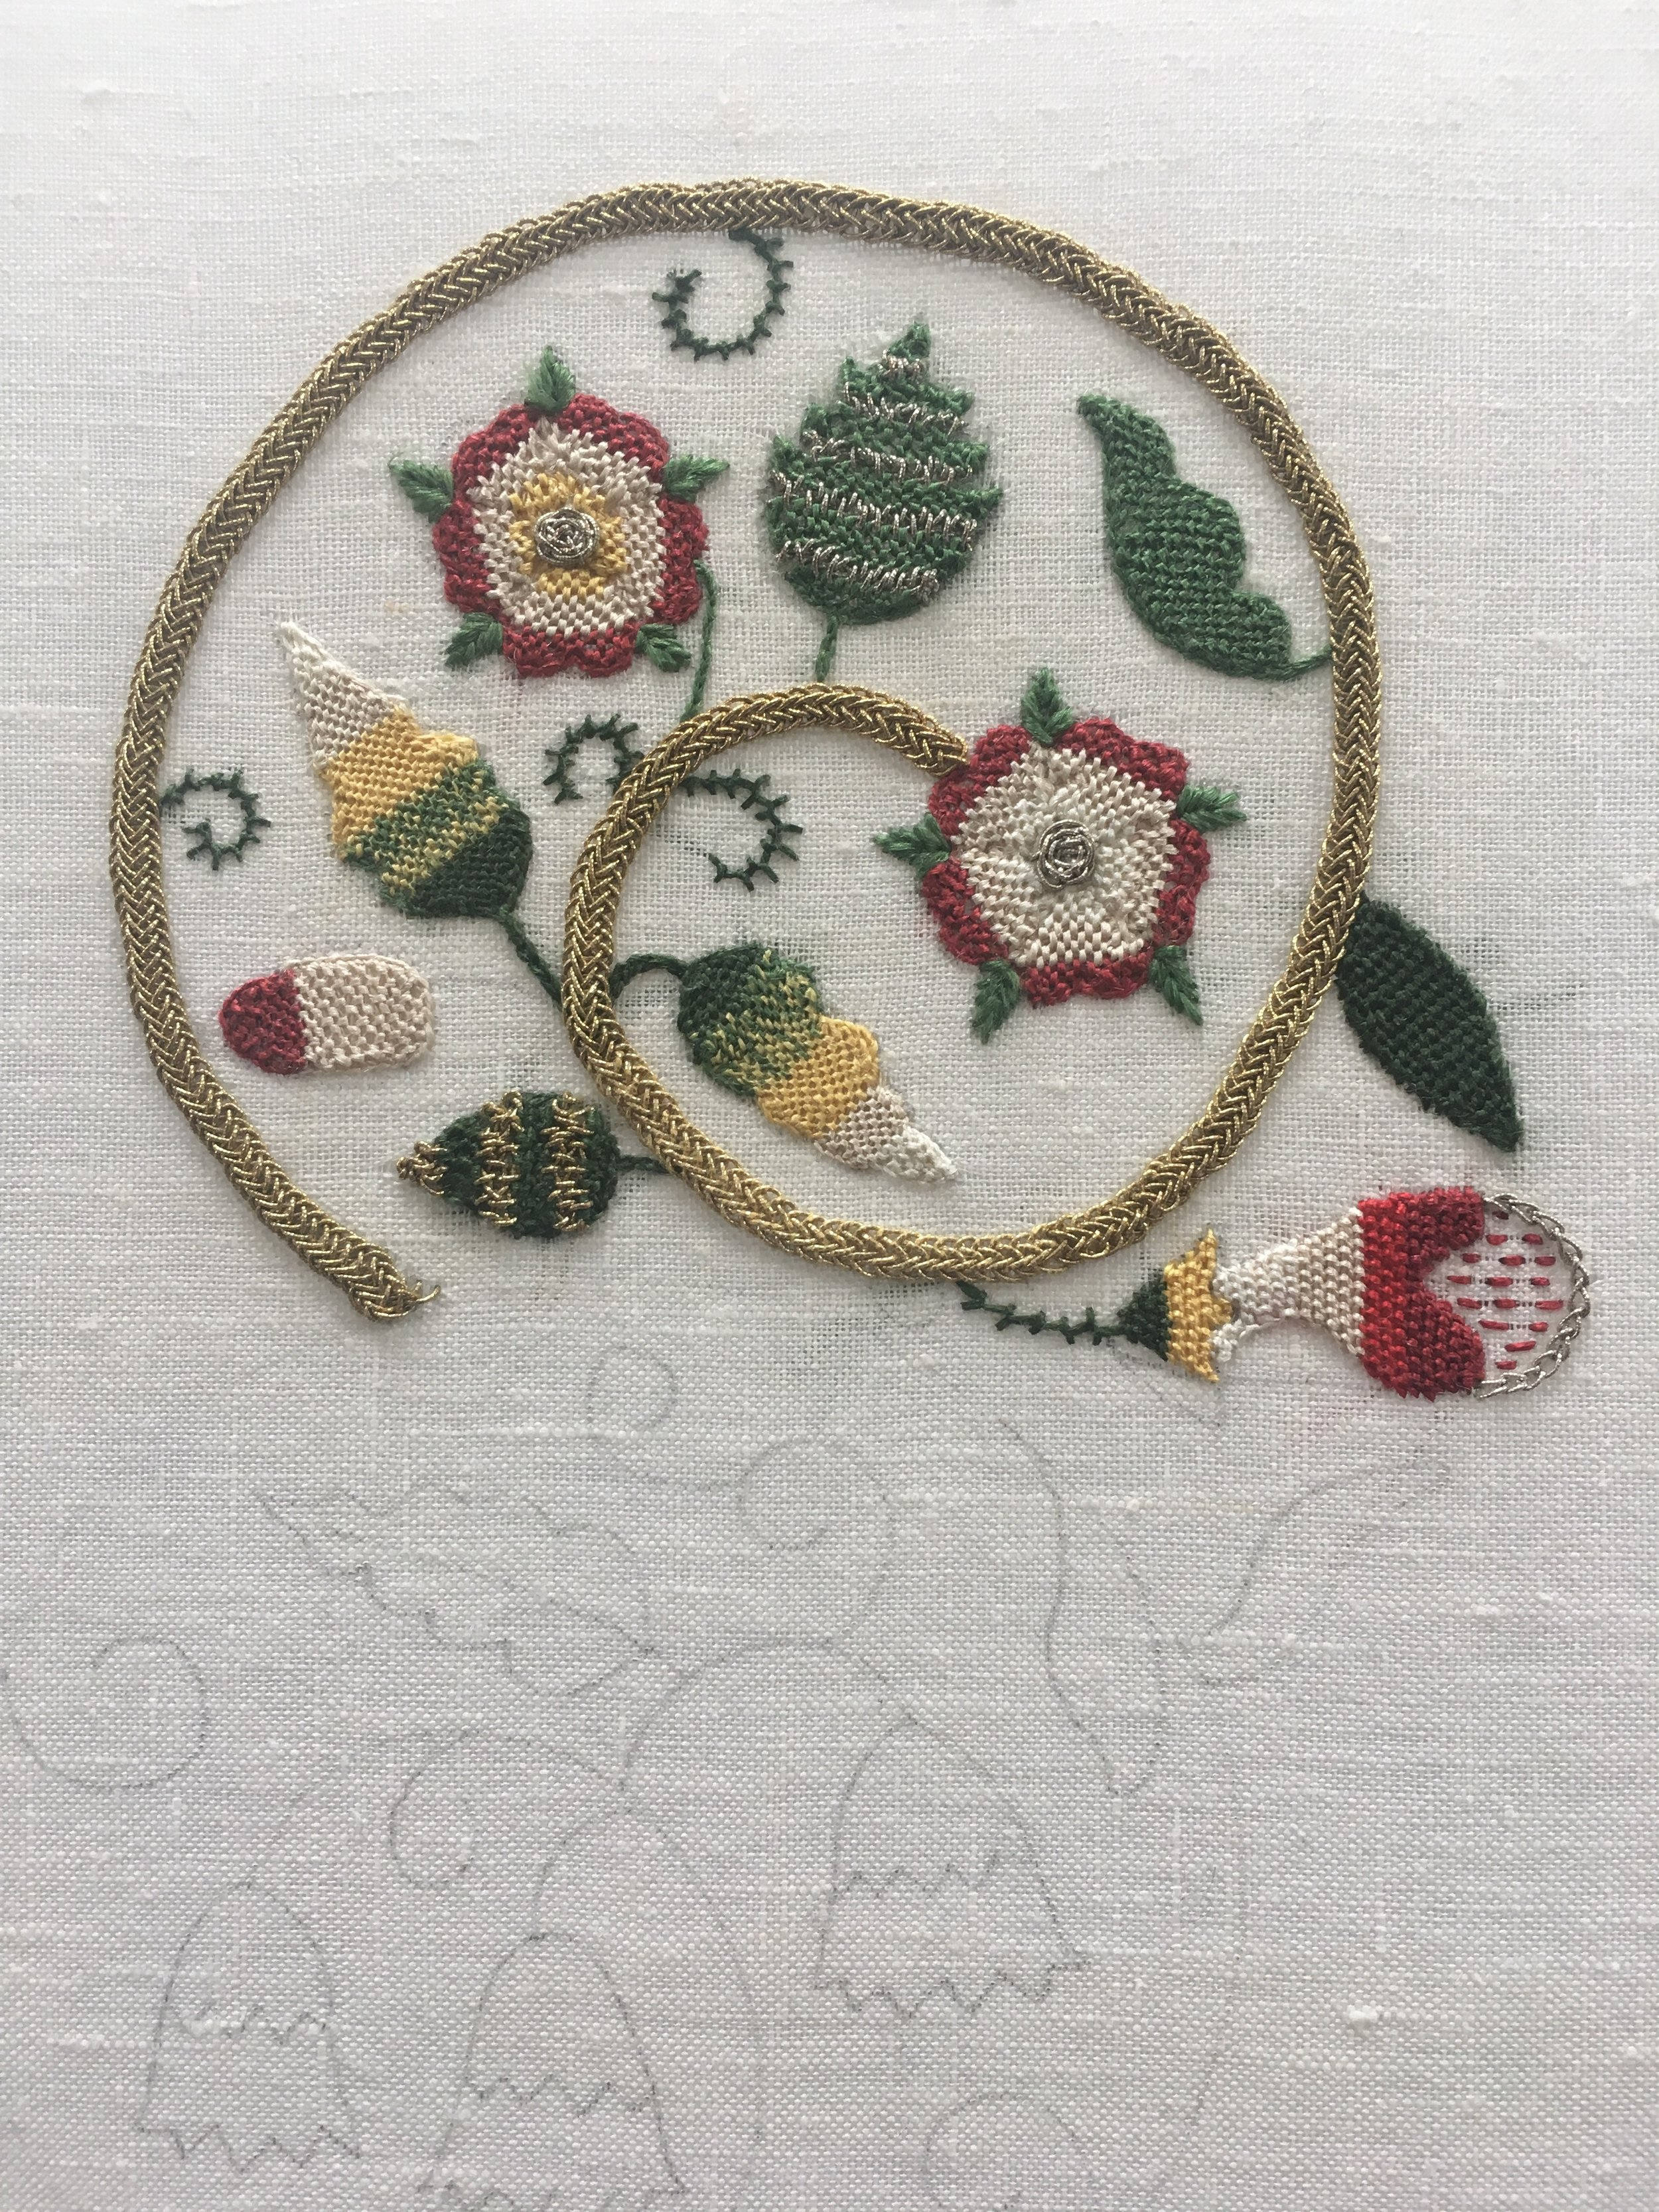 A sampler showing several different Jacobean embroidery stitches by Claire Thornton, tutor at The School for Historical Dress.